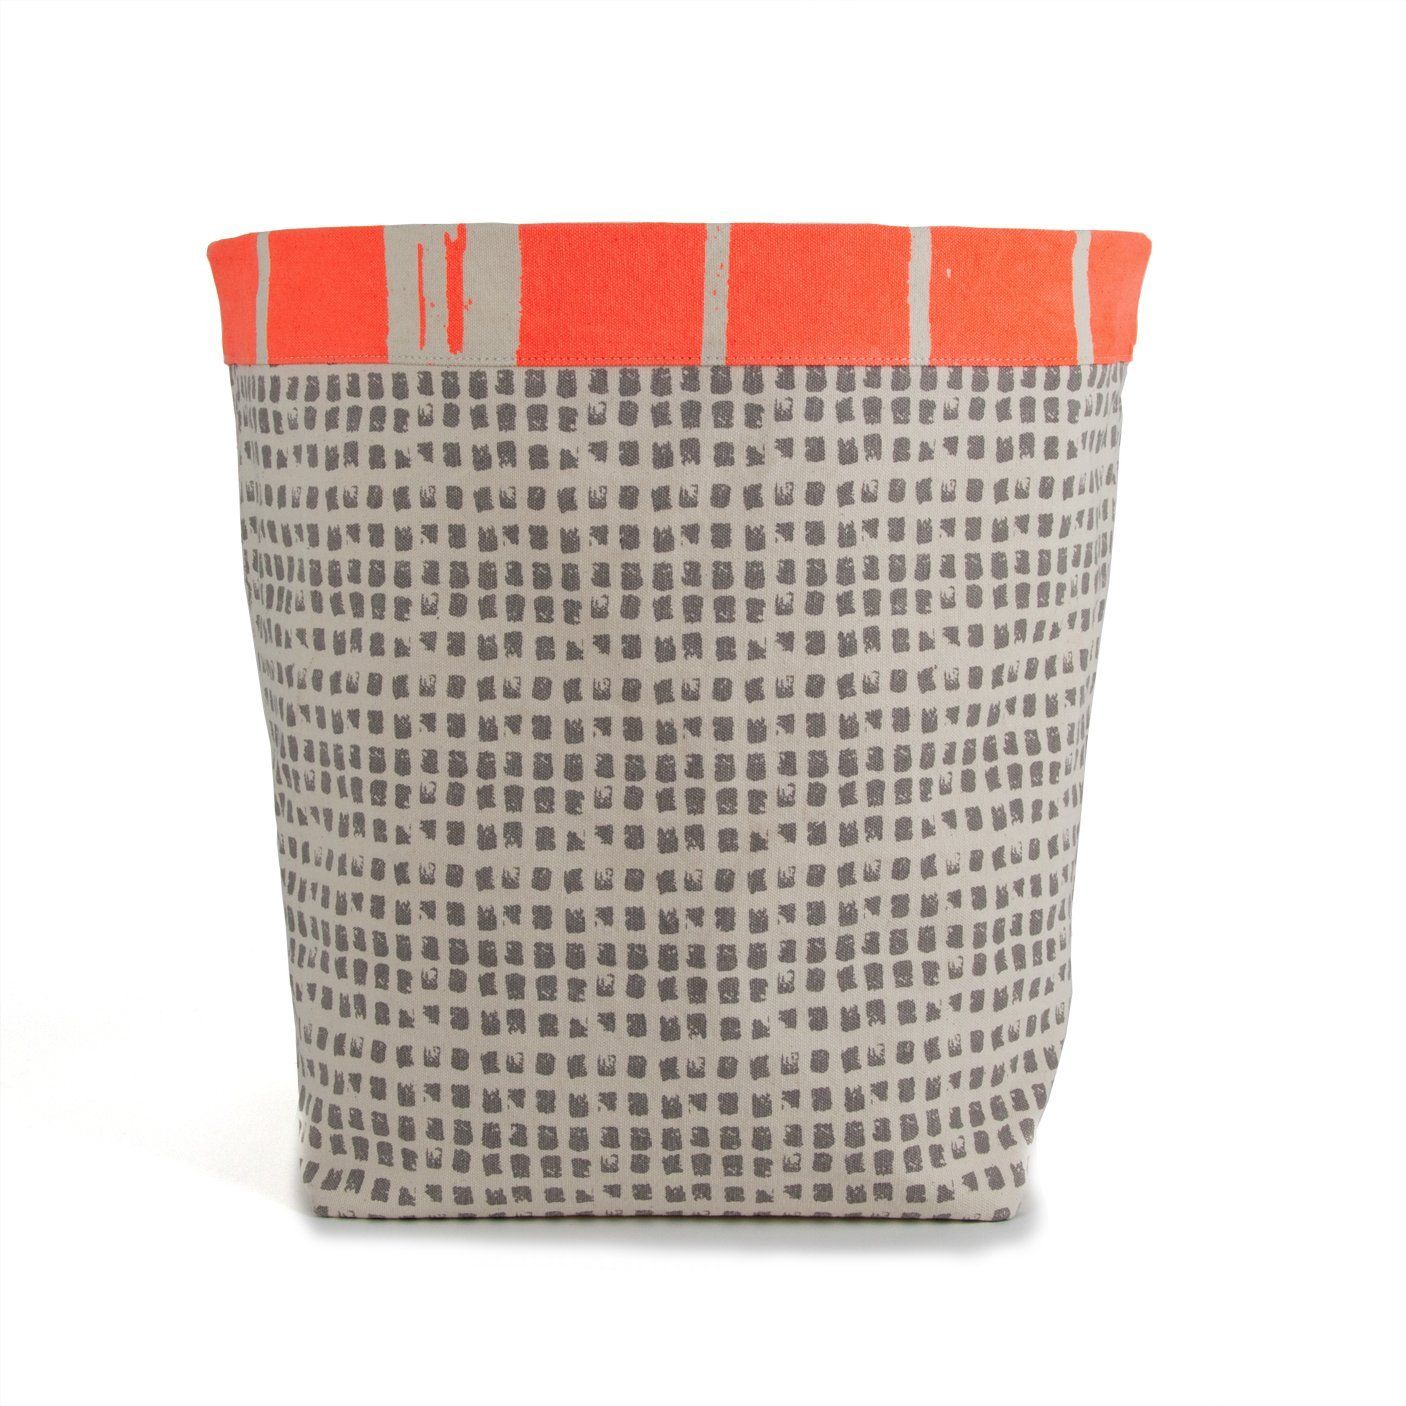 Amazon.com: Fluf Organic Cotton Reversible Storage Bin, Landscape Neon  Orange: Home